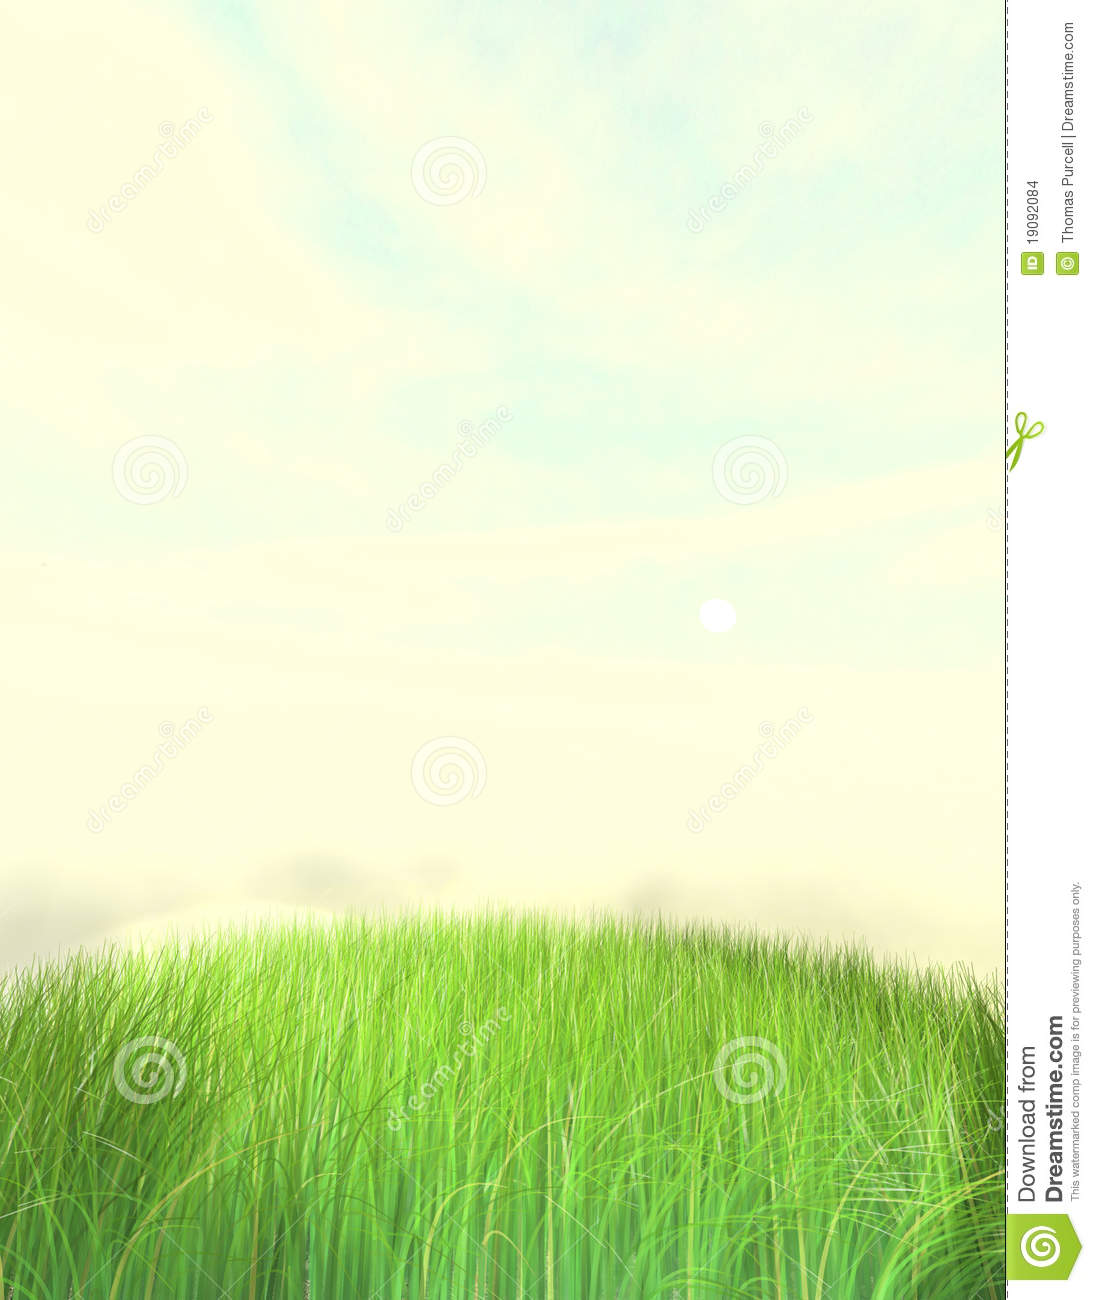 nice grass lawn background stock images image  nice grass lawn background